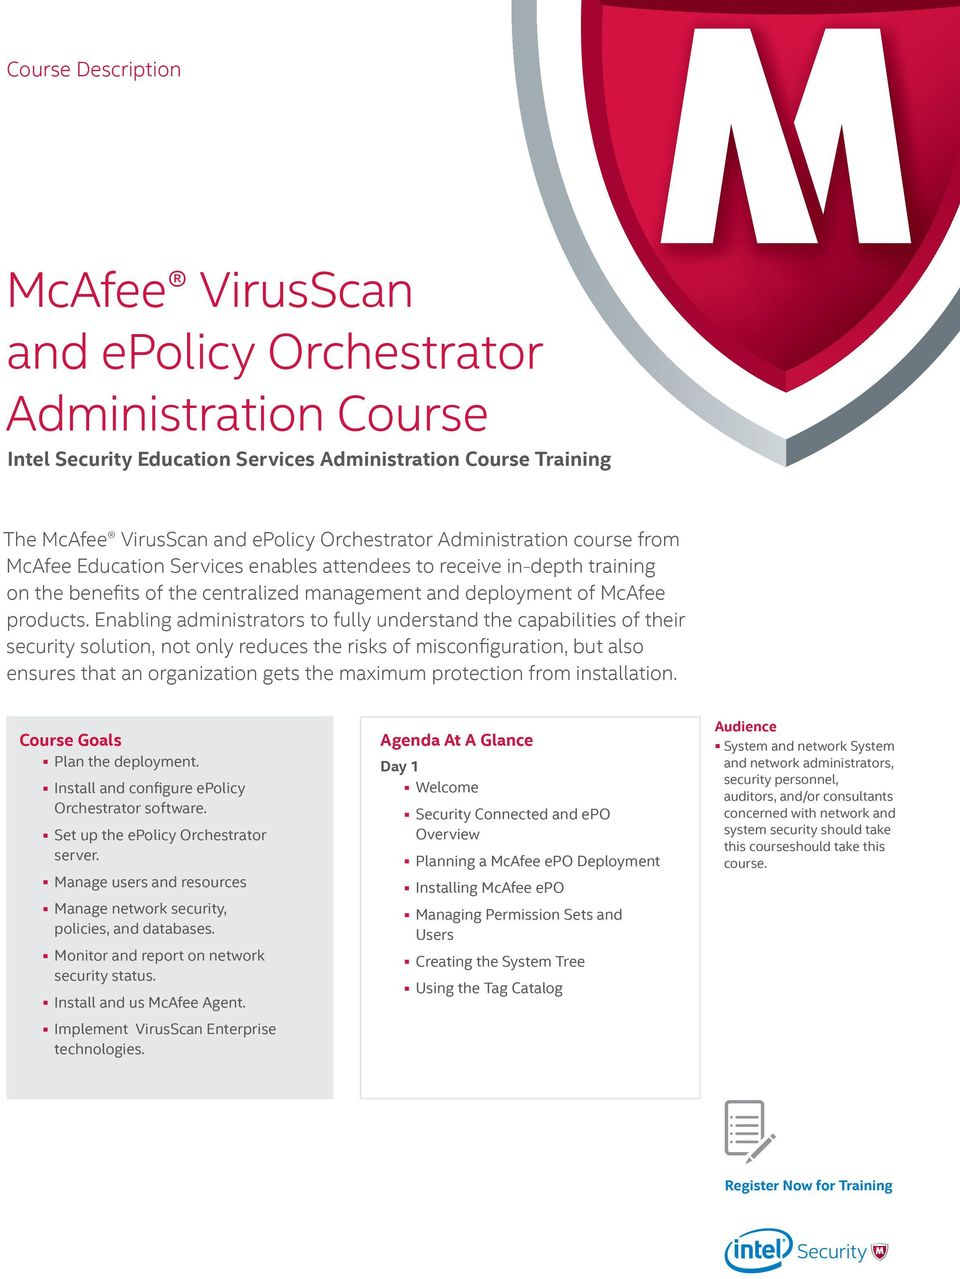 Enabling administrators to fully understand the capabilities of their security solution, not only reduces the risks of misconfiguration, but also ensures that an organization gets the maximum